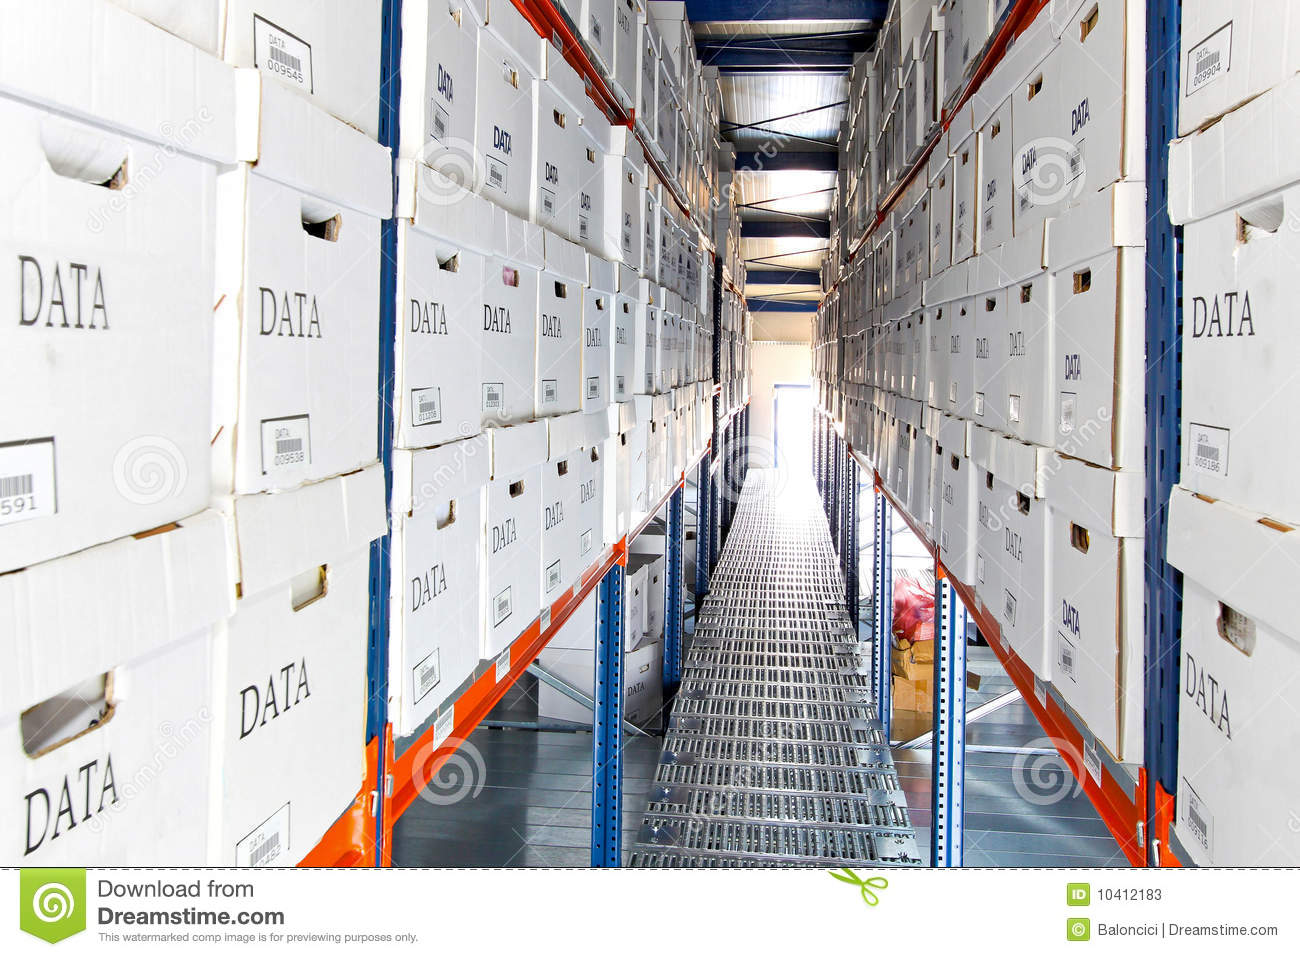 Data boxes rows